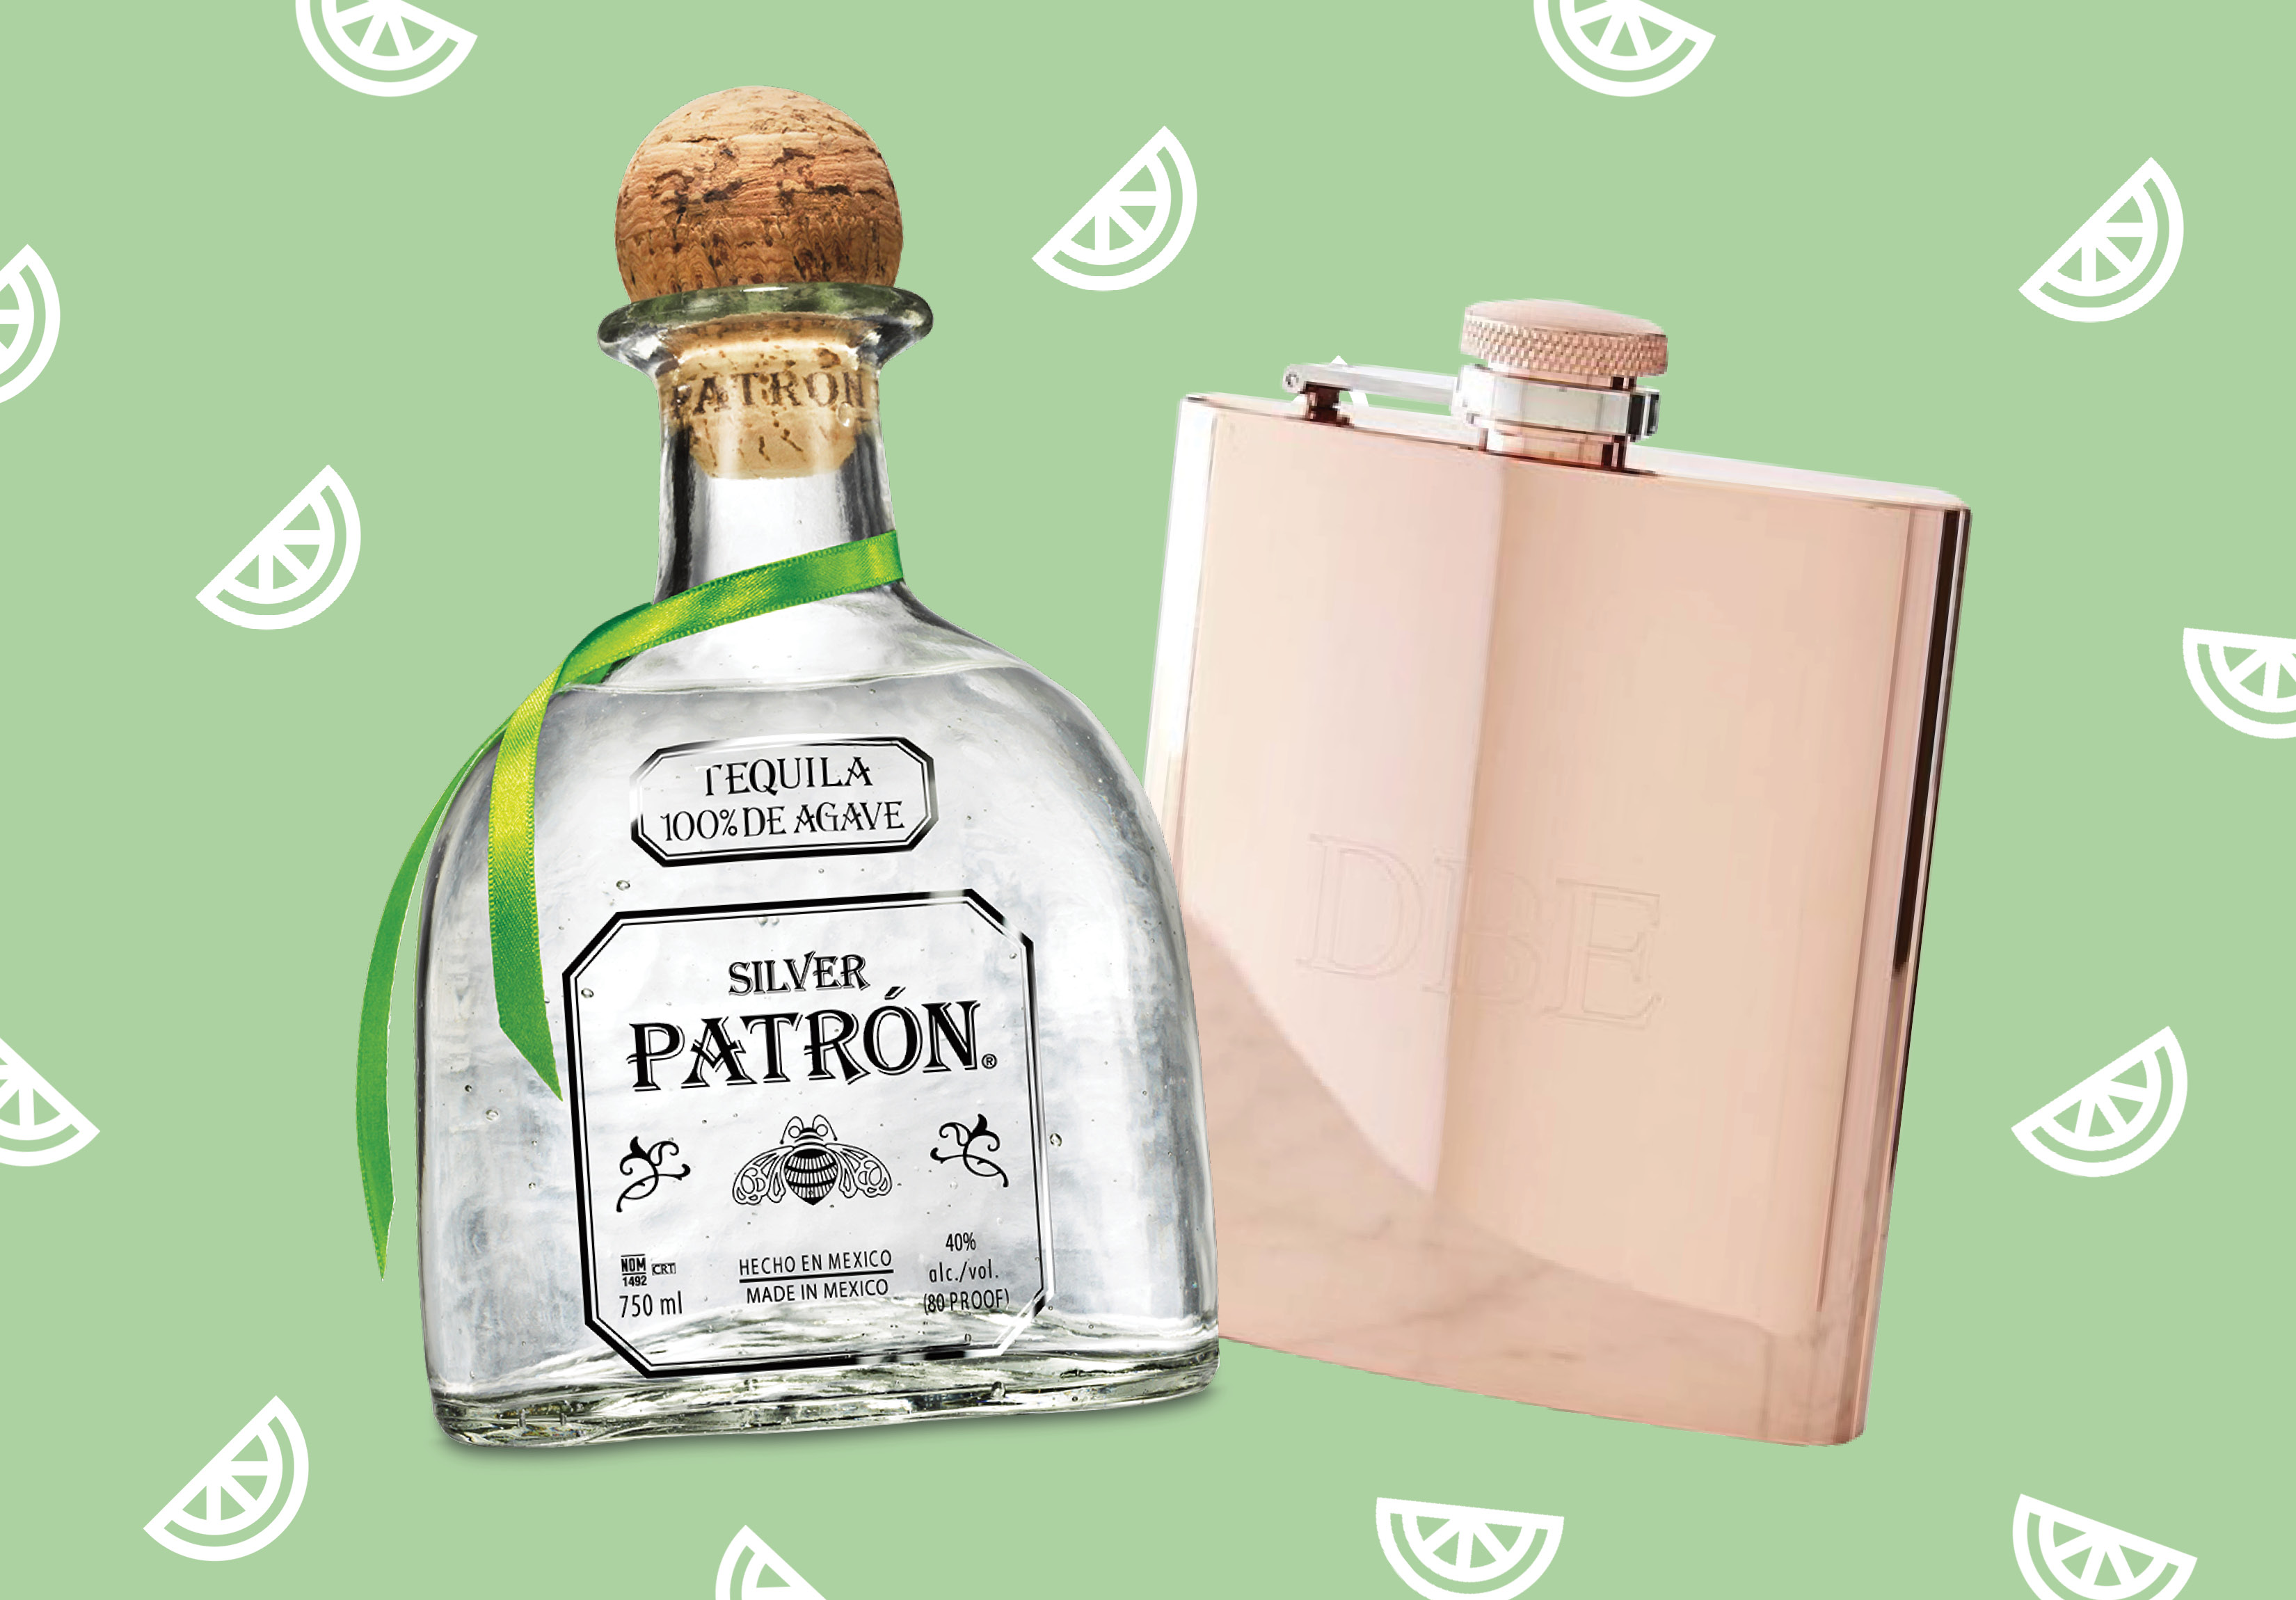 To celebrate National Tequila Day, here are the best gifts for the tequila-lover in your life